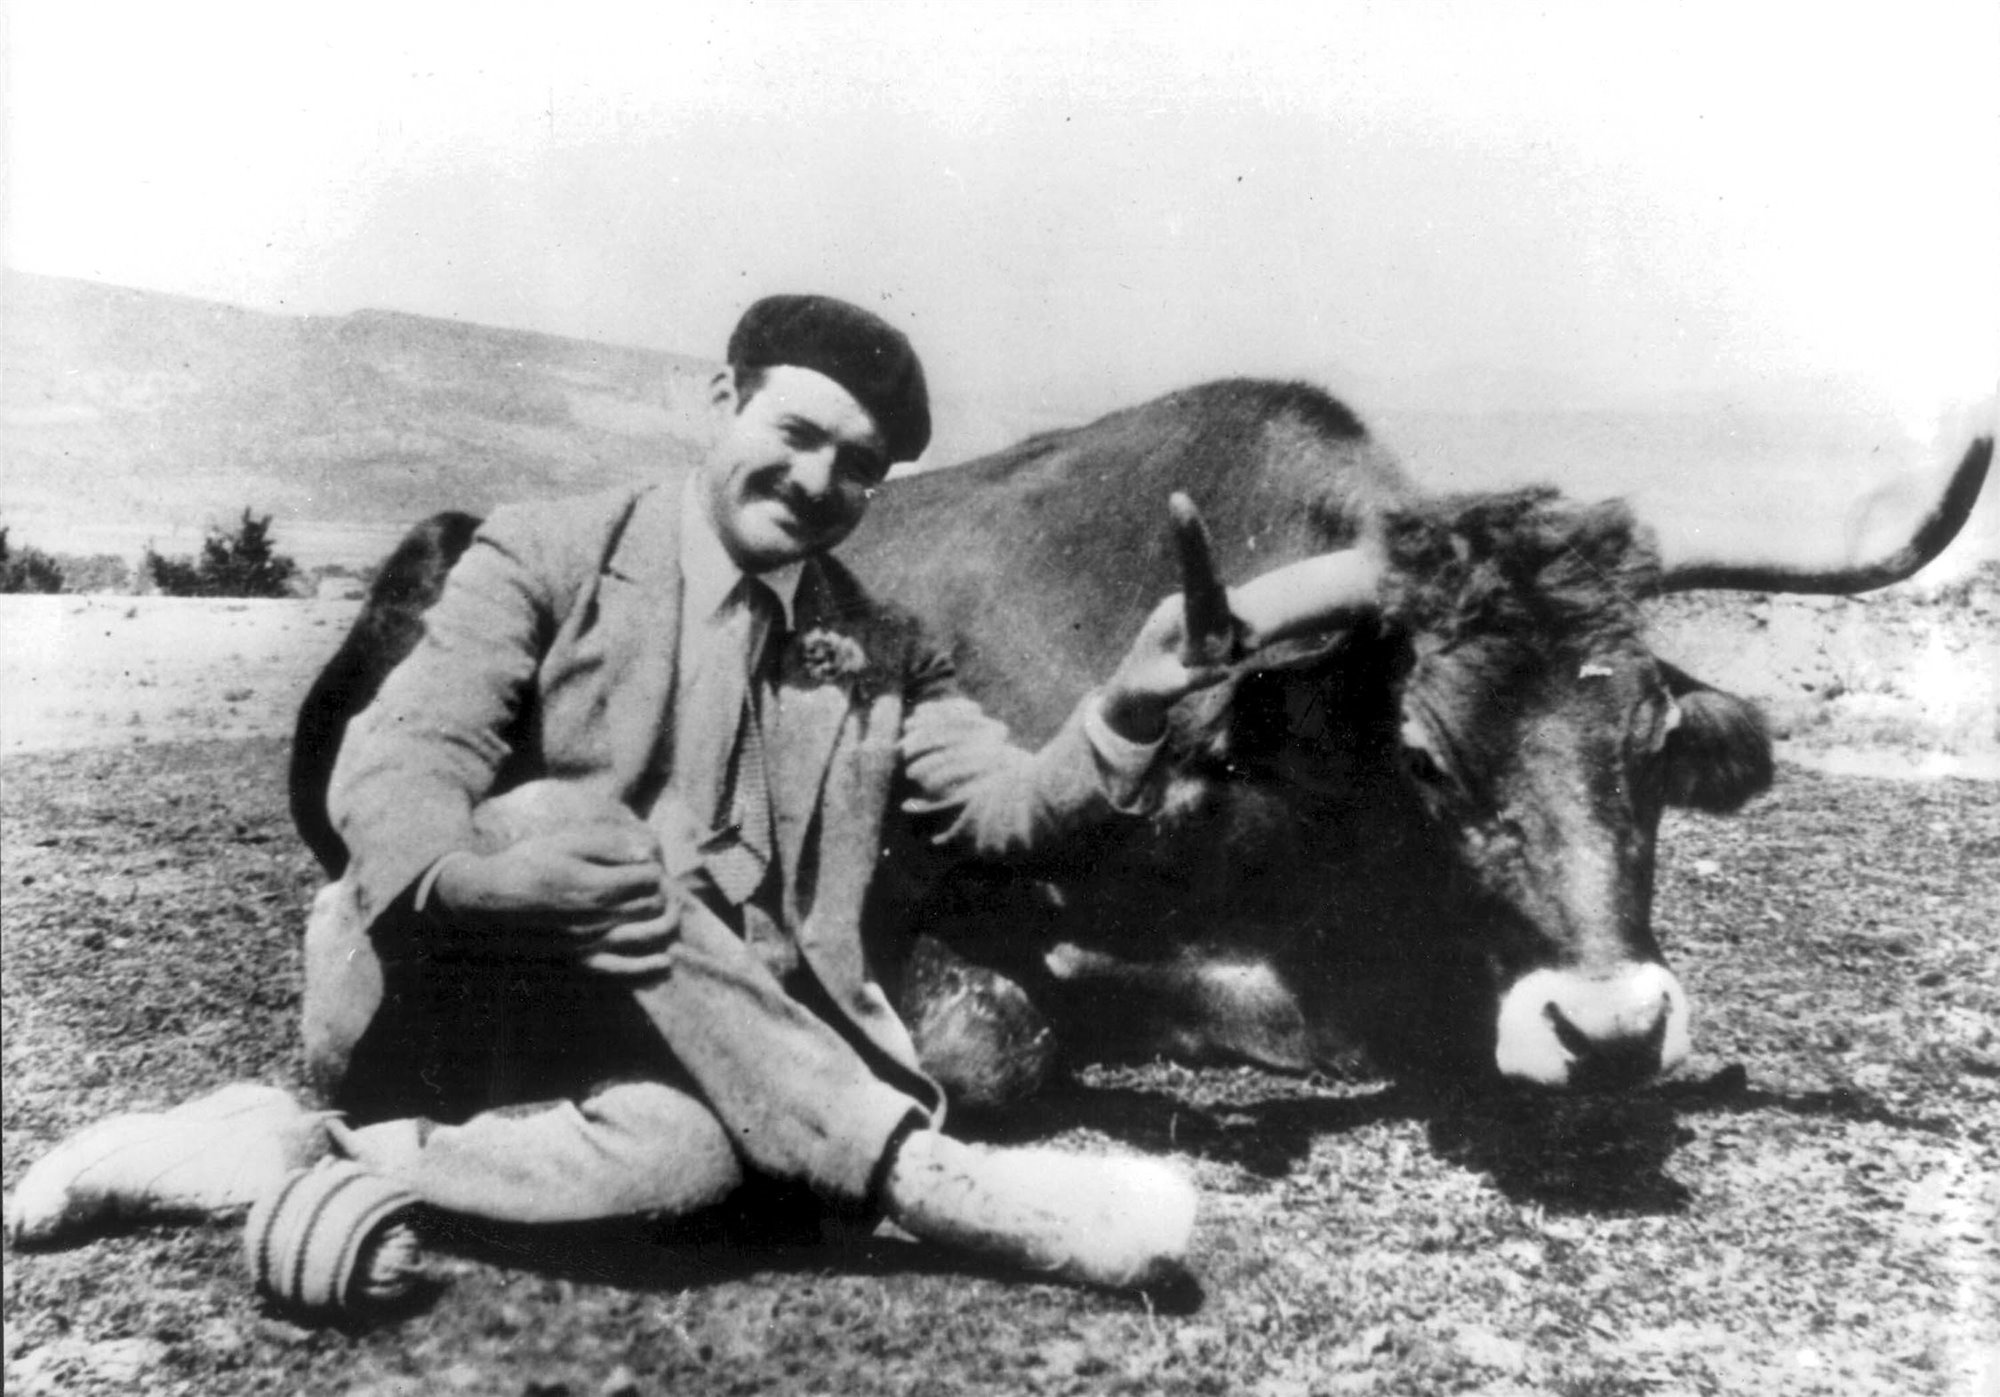 Ernest Hemingway poses with a bull in Mexico 1938. Ernest Hemingway posa junto a un toro en México en 1938